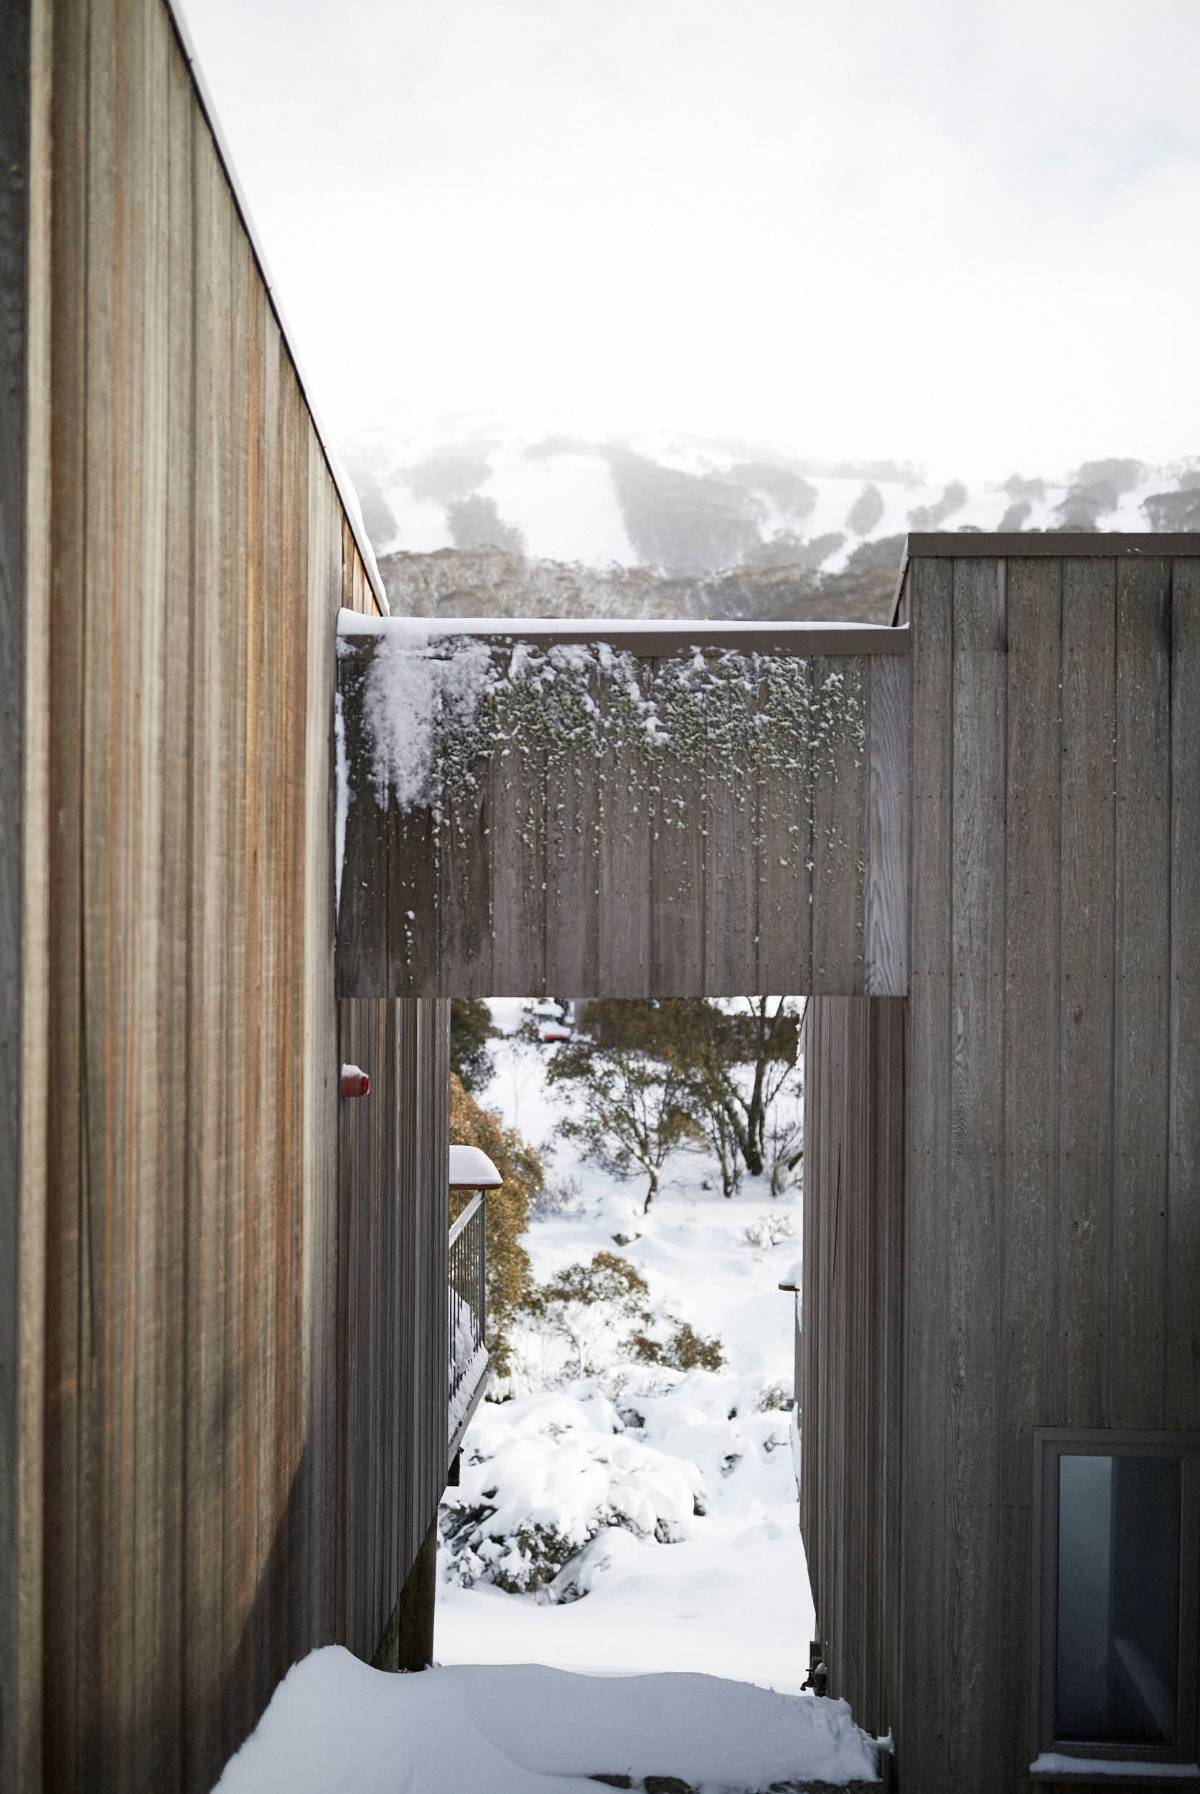 The Eastern Cedar Cabin Thredbo